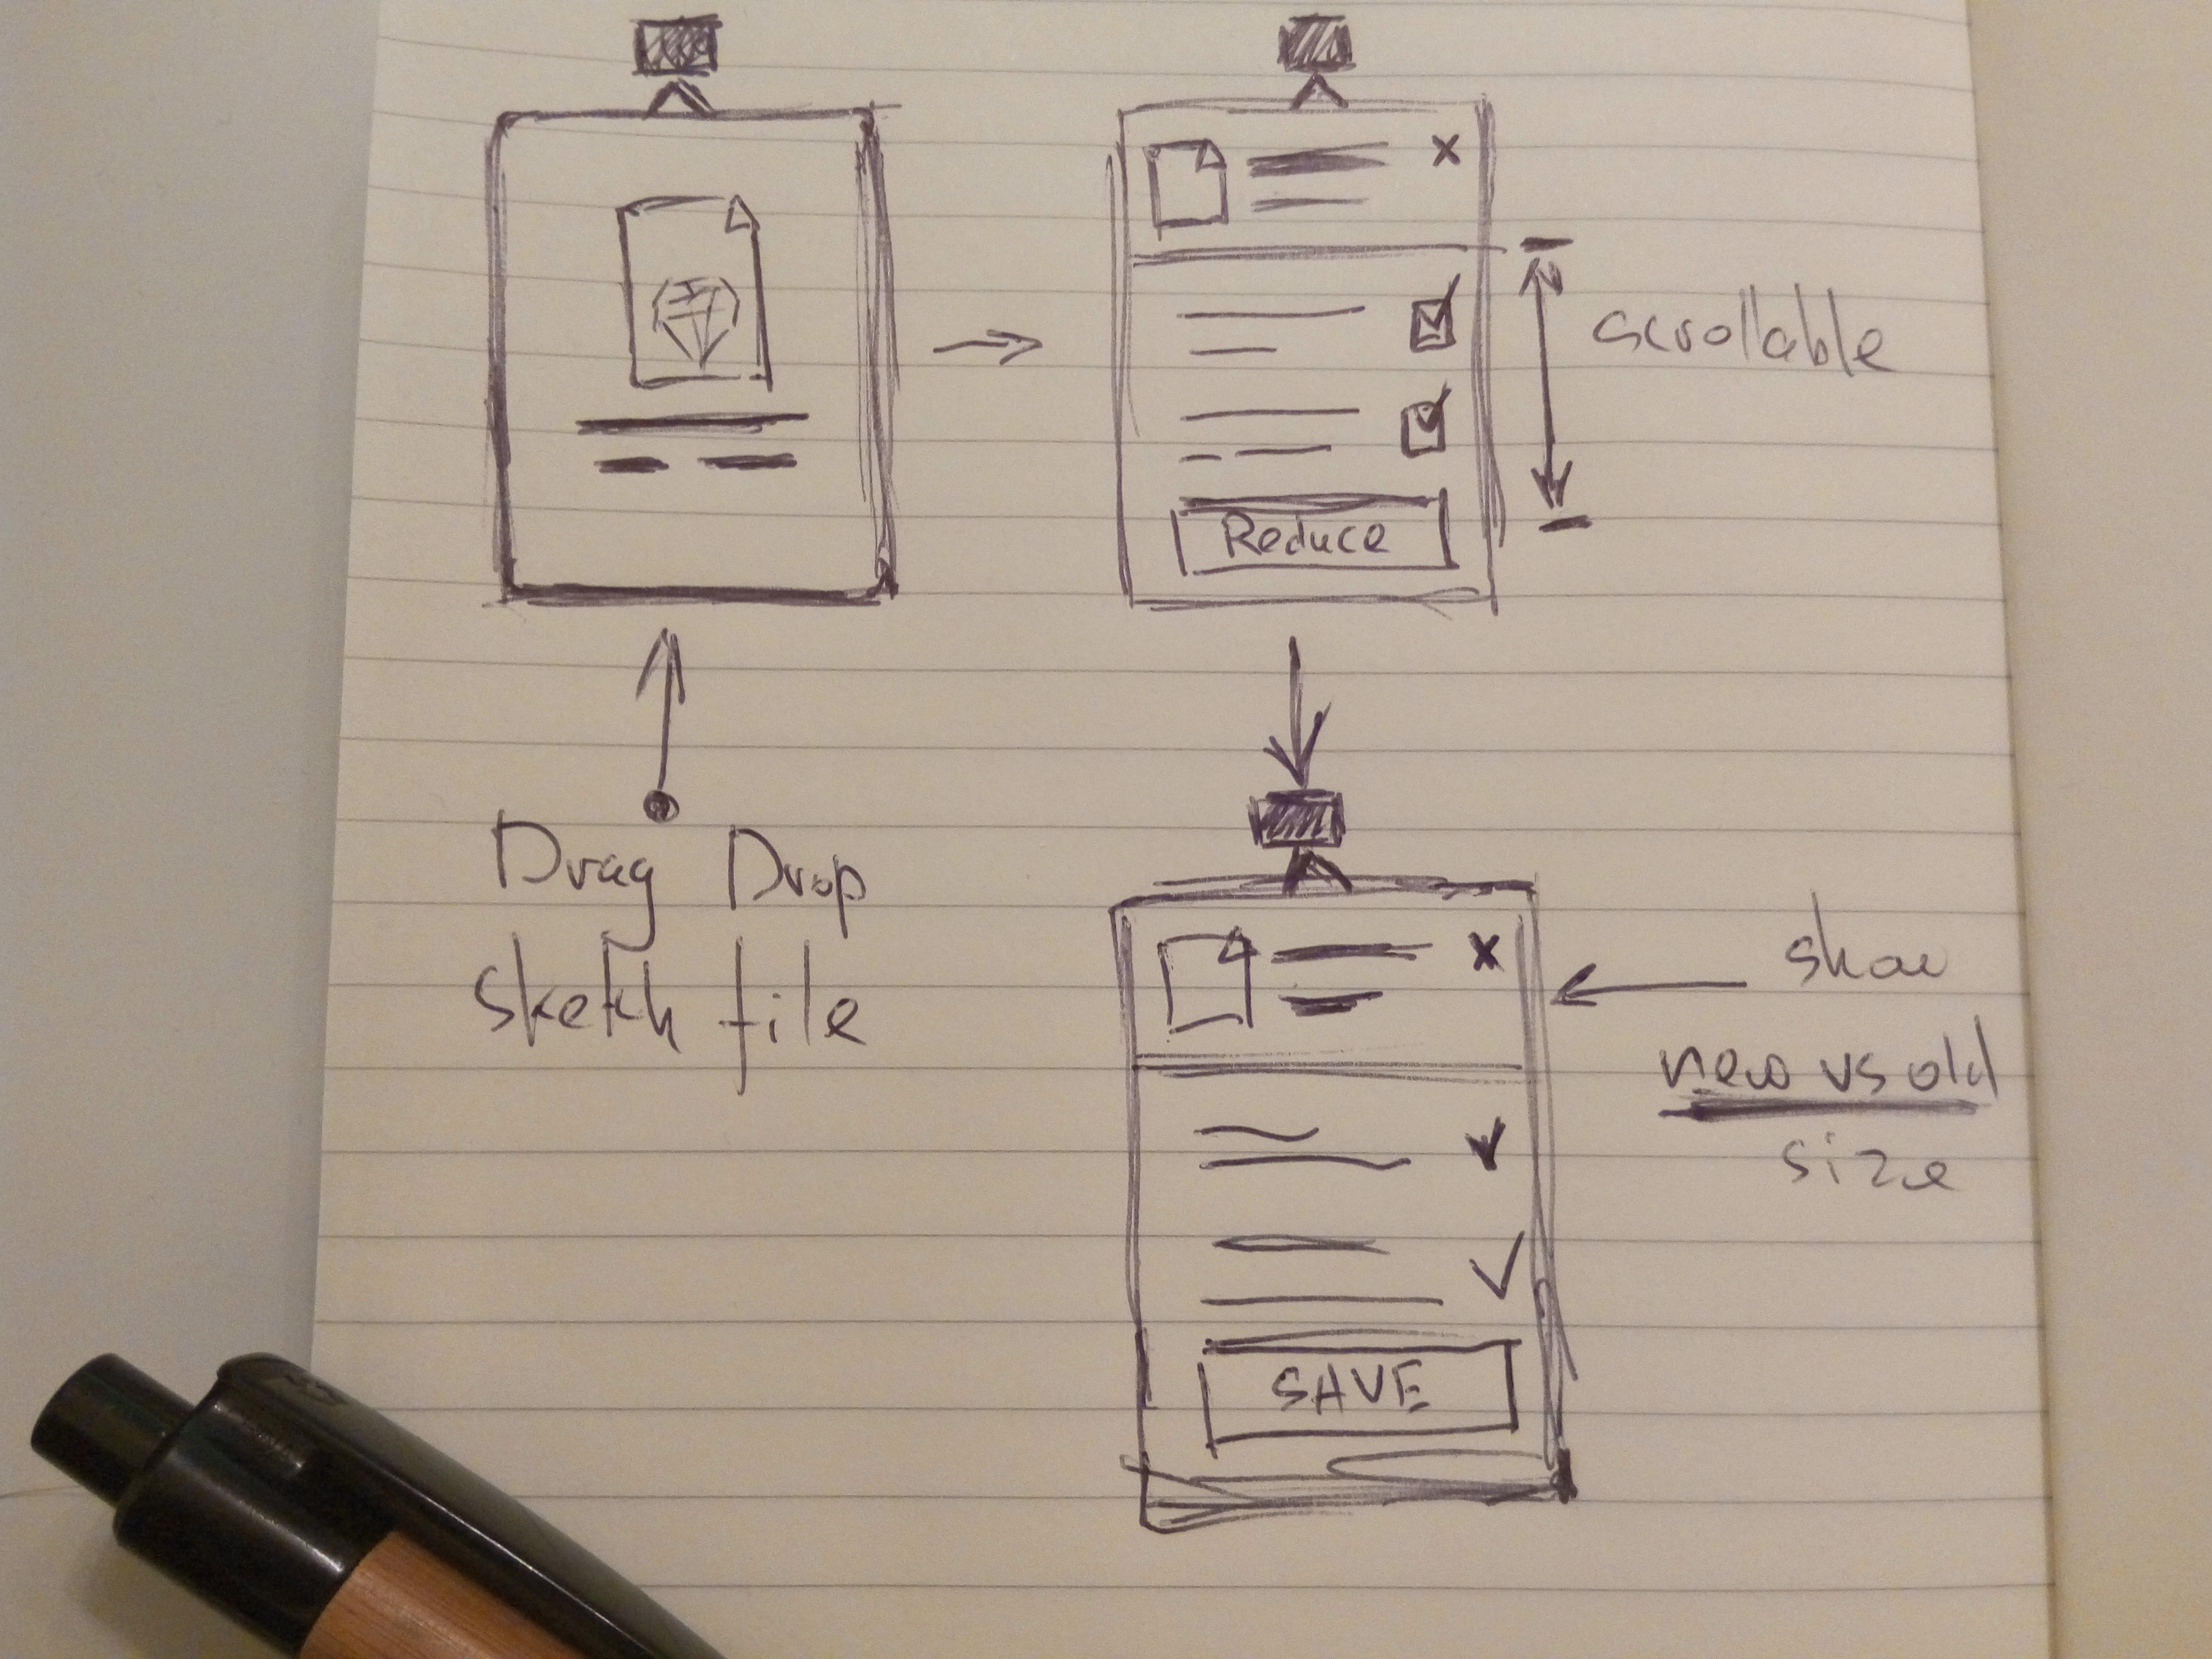 Optimizing Sketch Files Lessons Learned In Creating The Reduce App Dimmer Switch Wiringdimmerswitchsketch1jpg Initial Wireframe